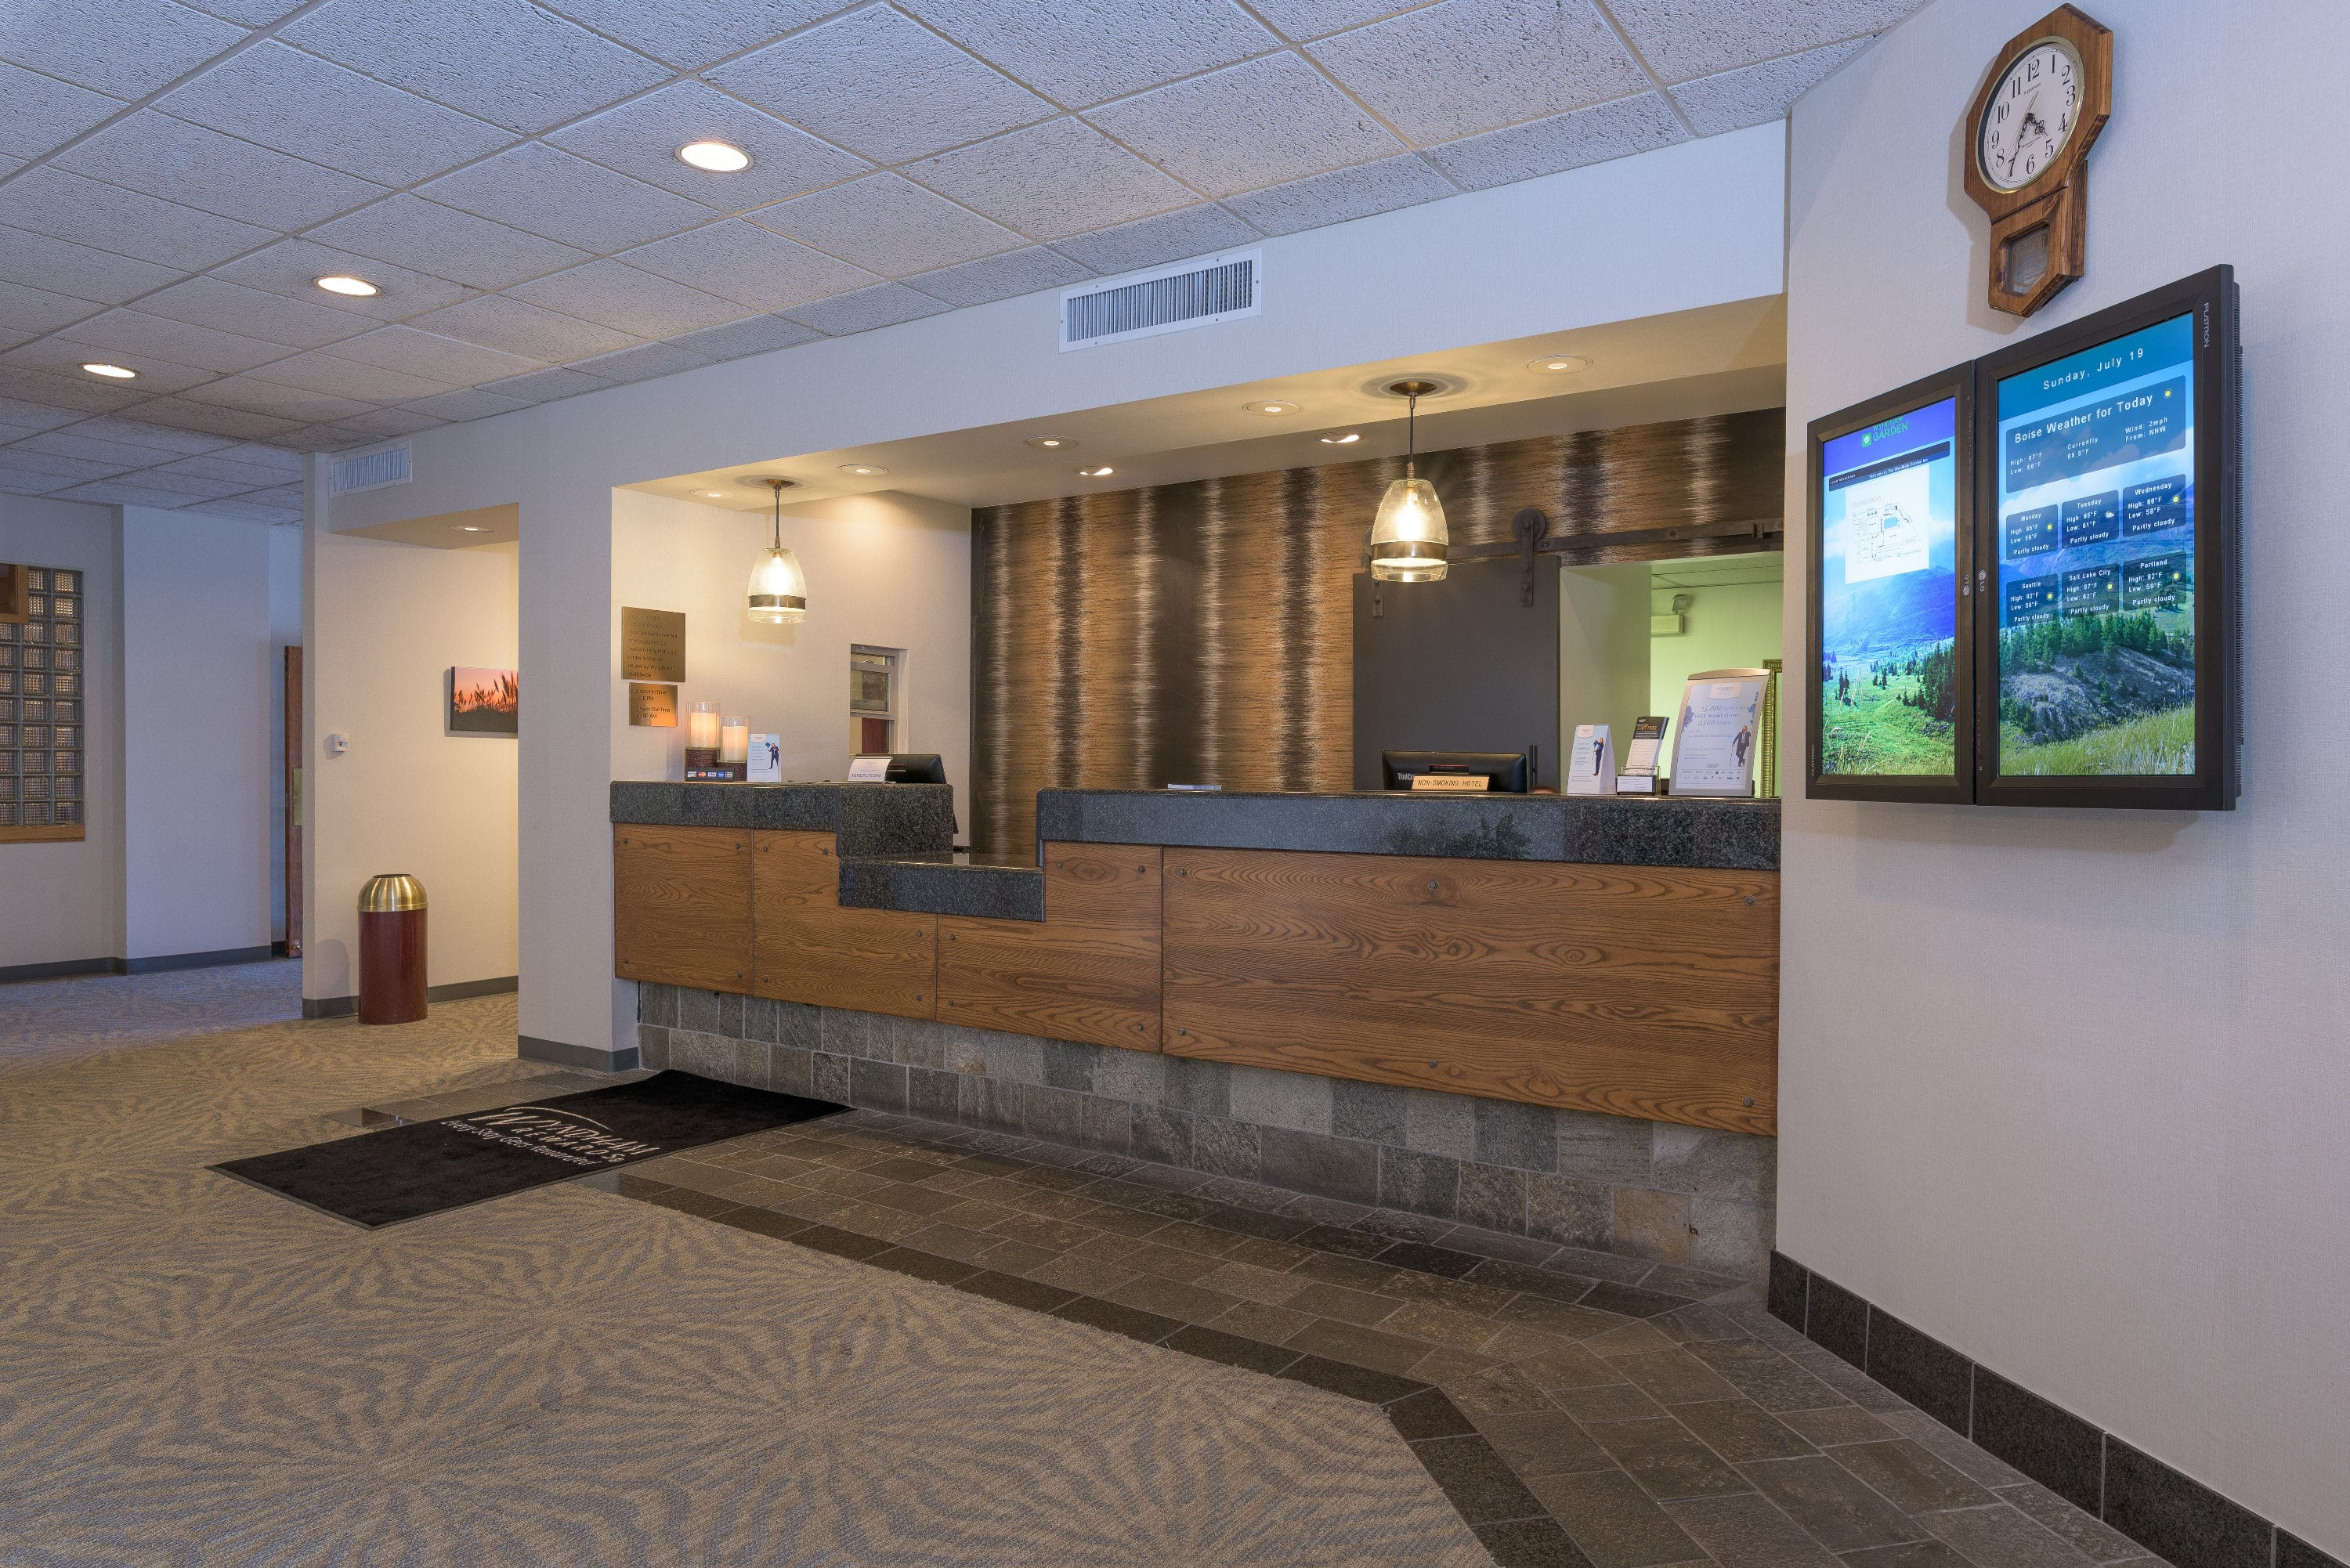 Elegant Wyndham Garden Boise Airport Hotel Lobby In Idaho With Hotels Near State University